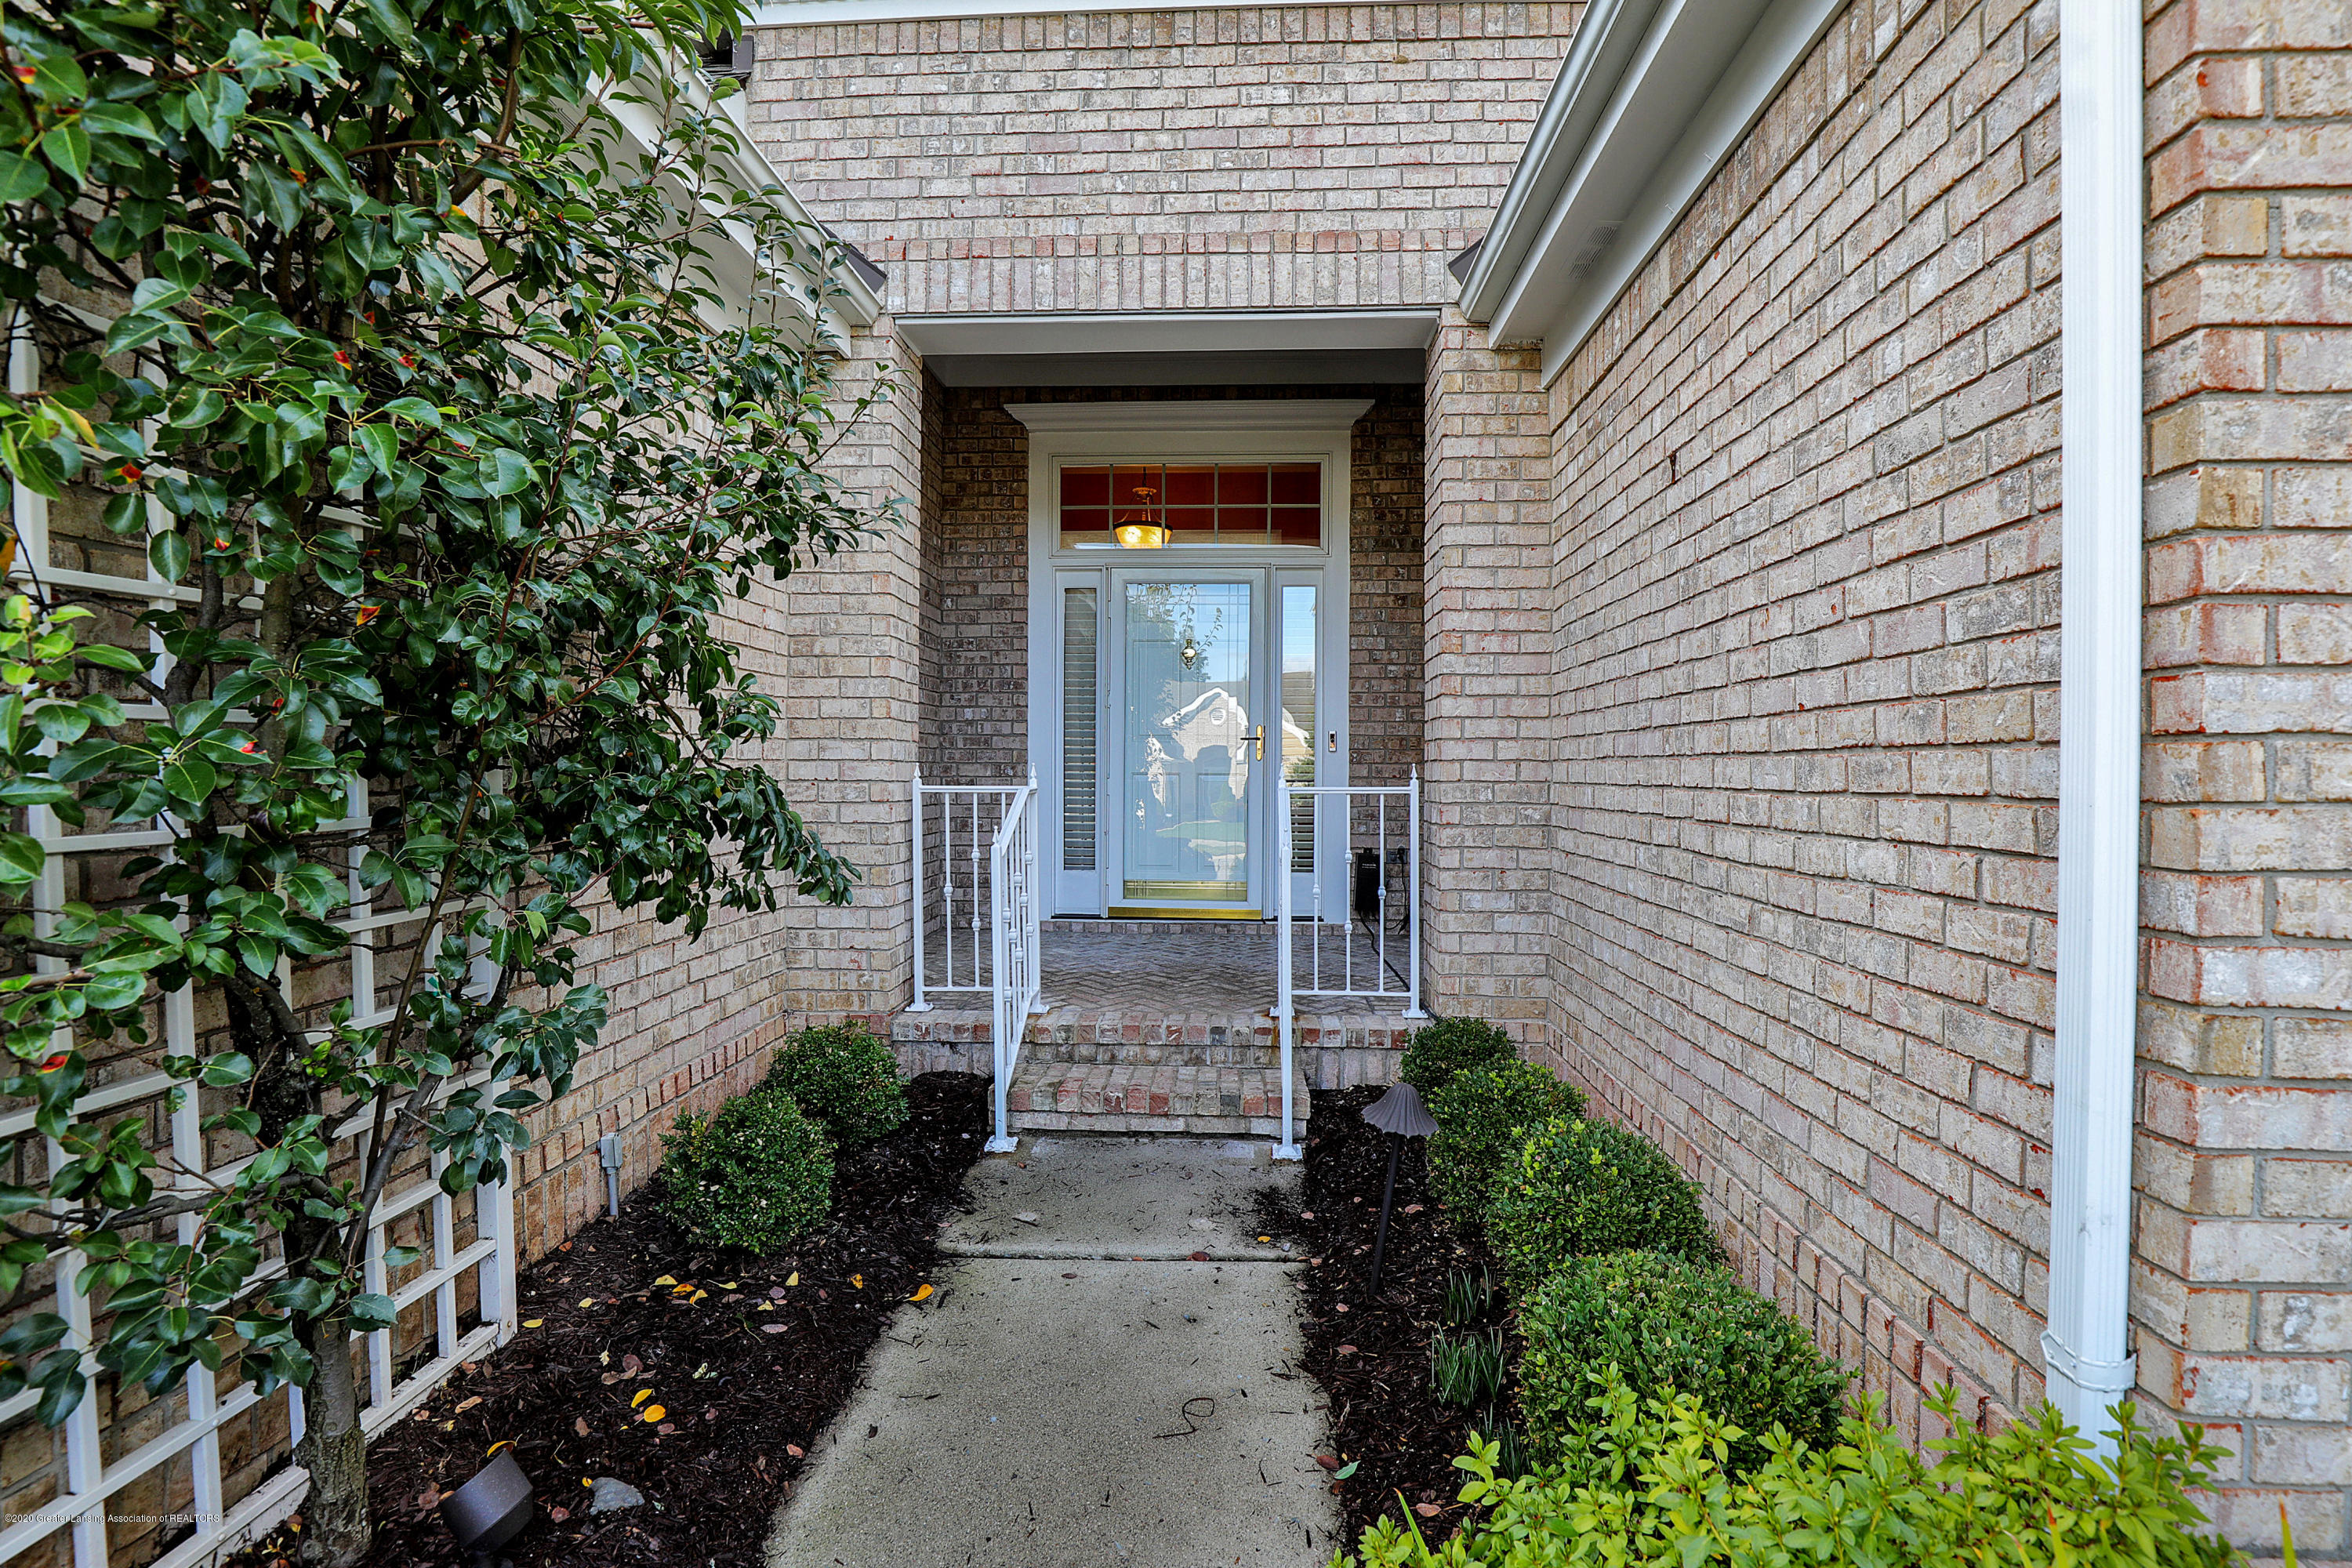 6143 E Longview Dr - Front entry way - 3